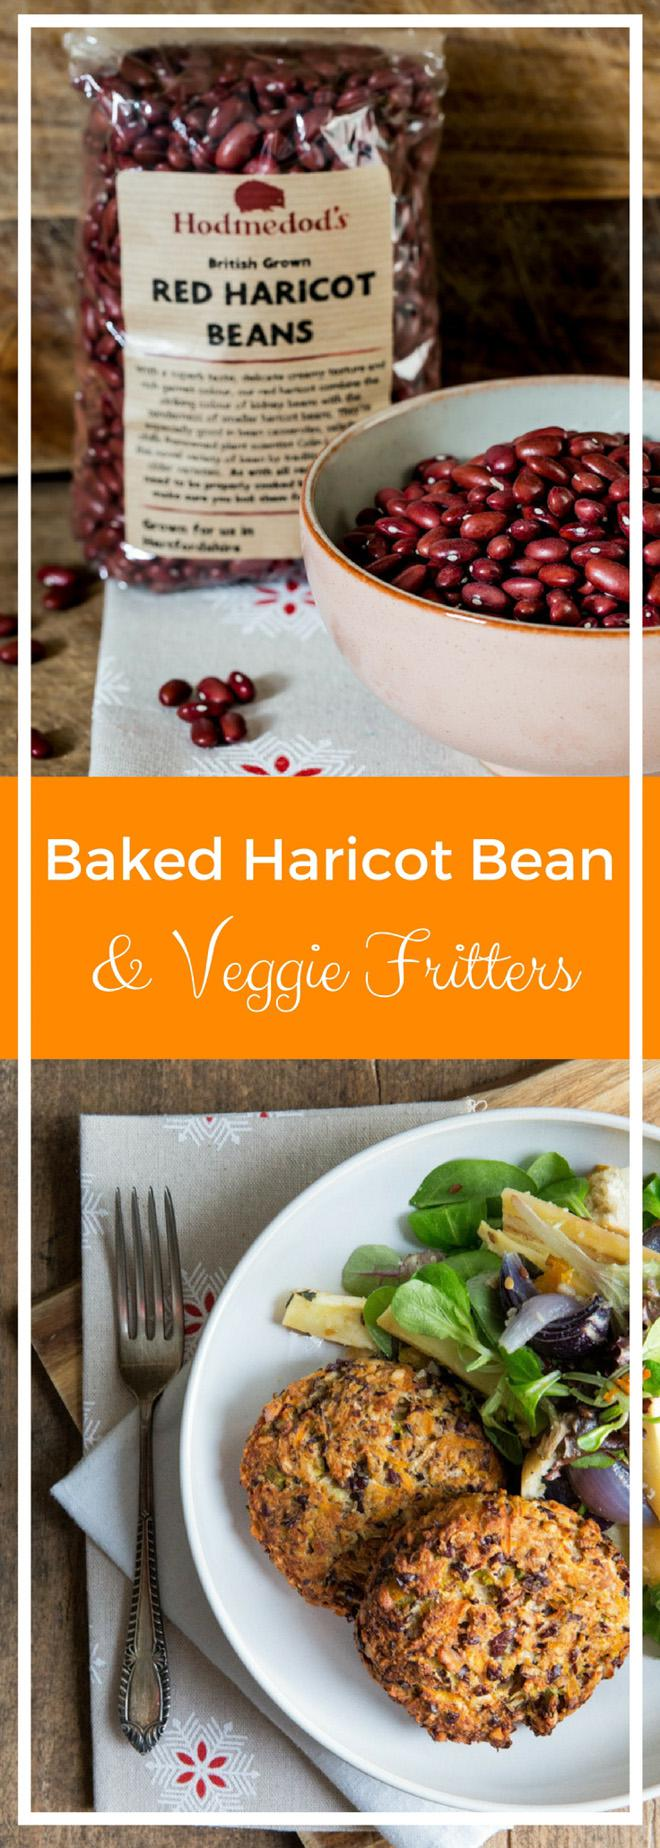 Baked Haricot Bean and Vegetable Fritters - Packed with protein from Hodmedods Red Haricot Beans and loads of veggie freshness and taste | thecookandhim.com